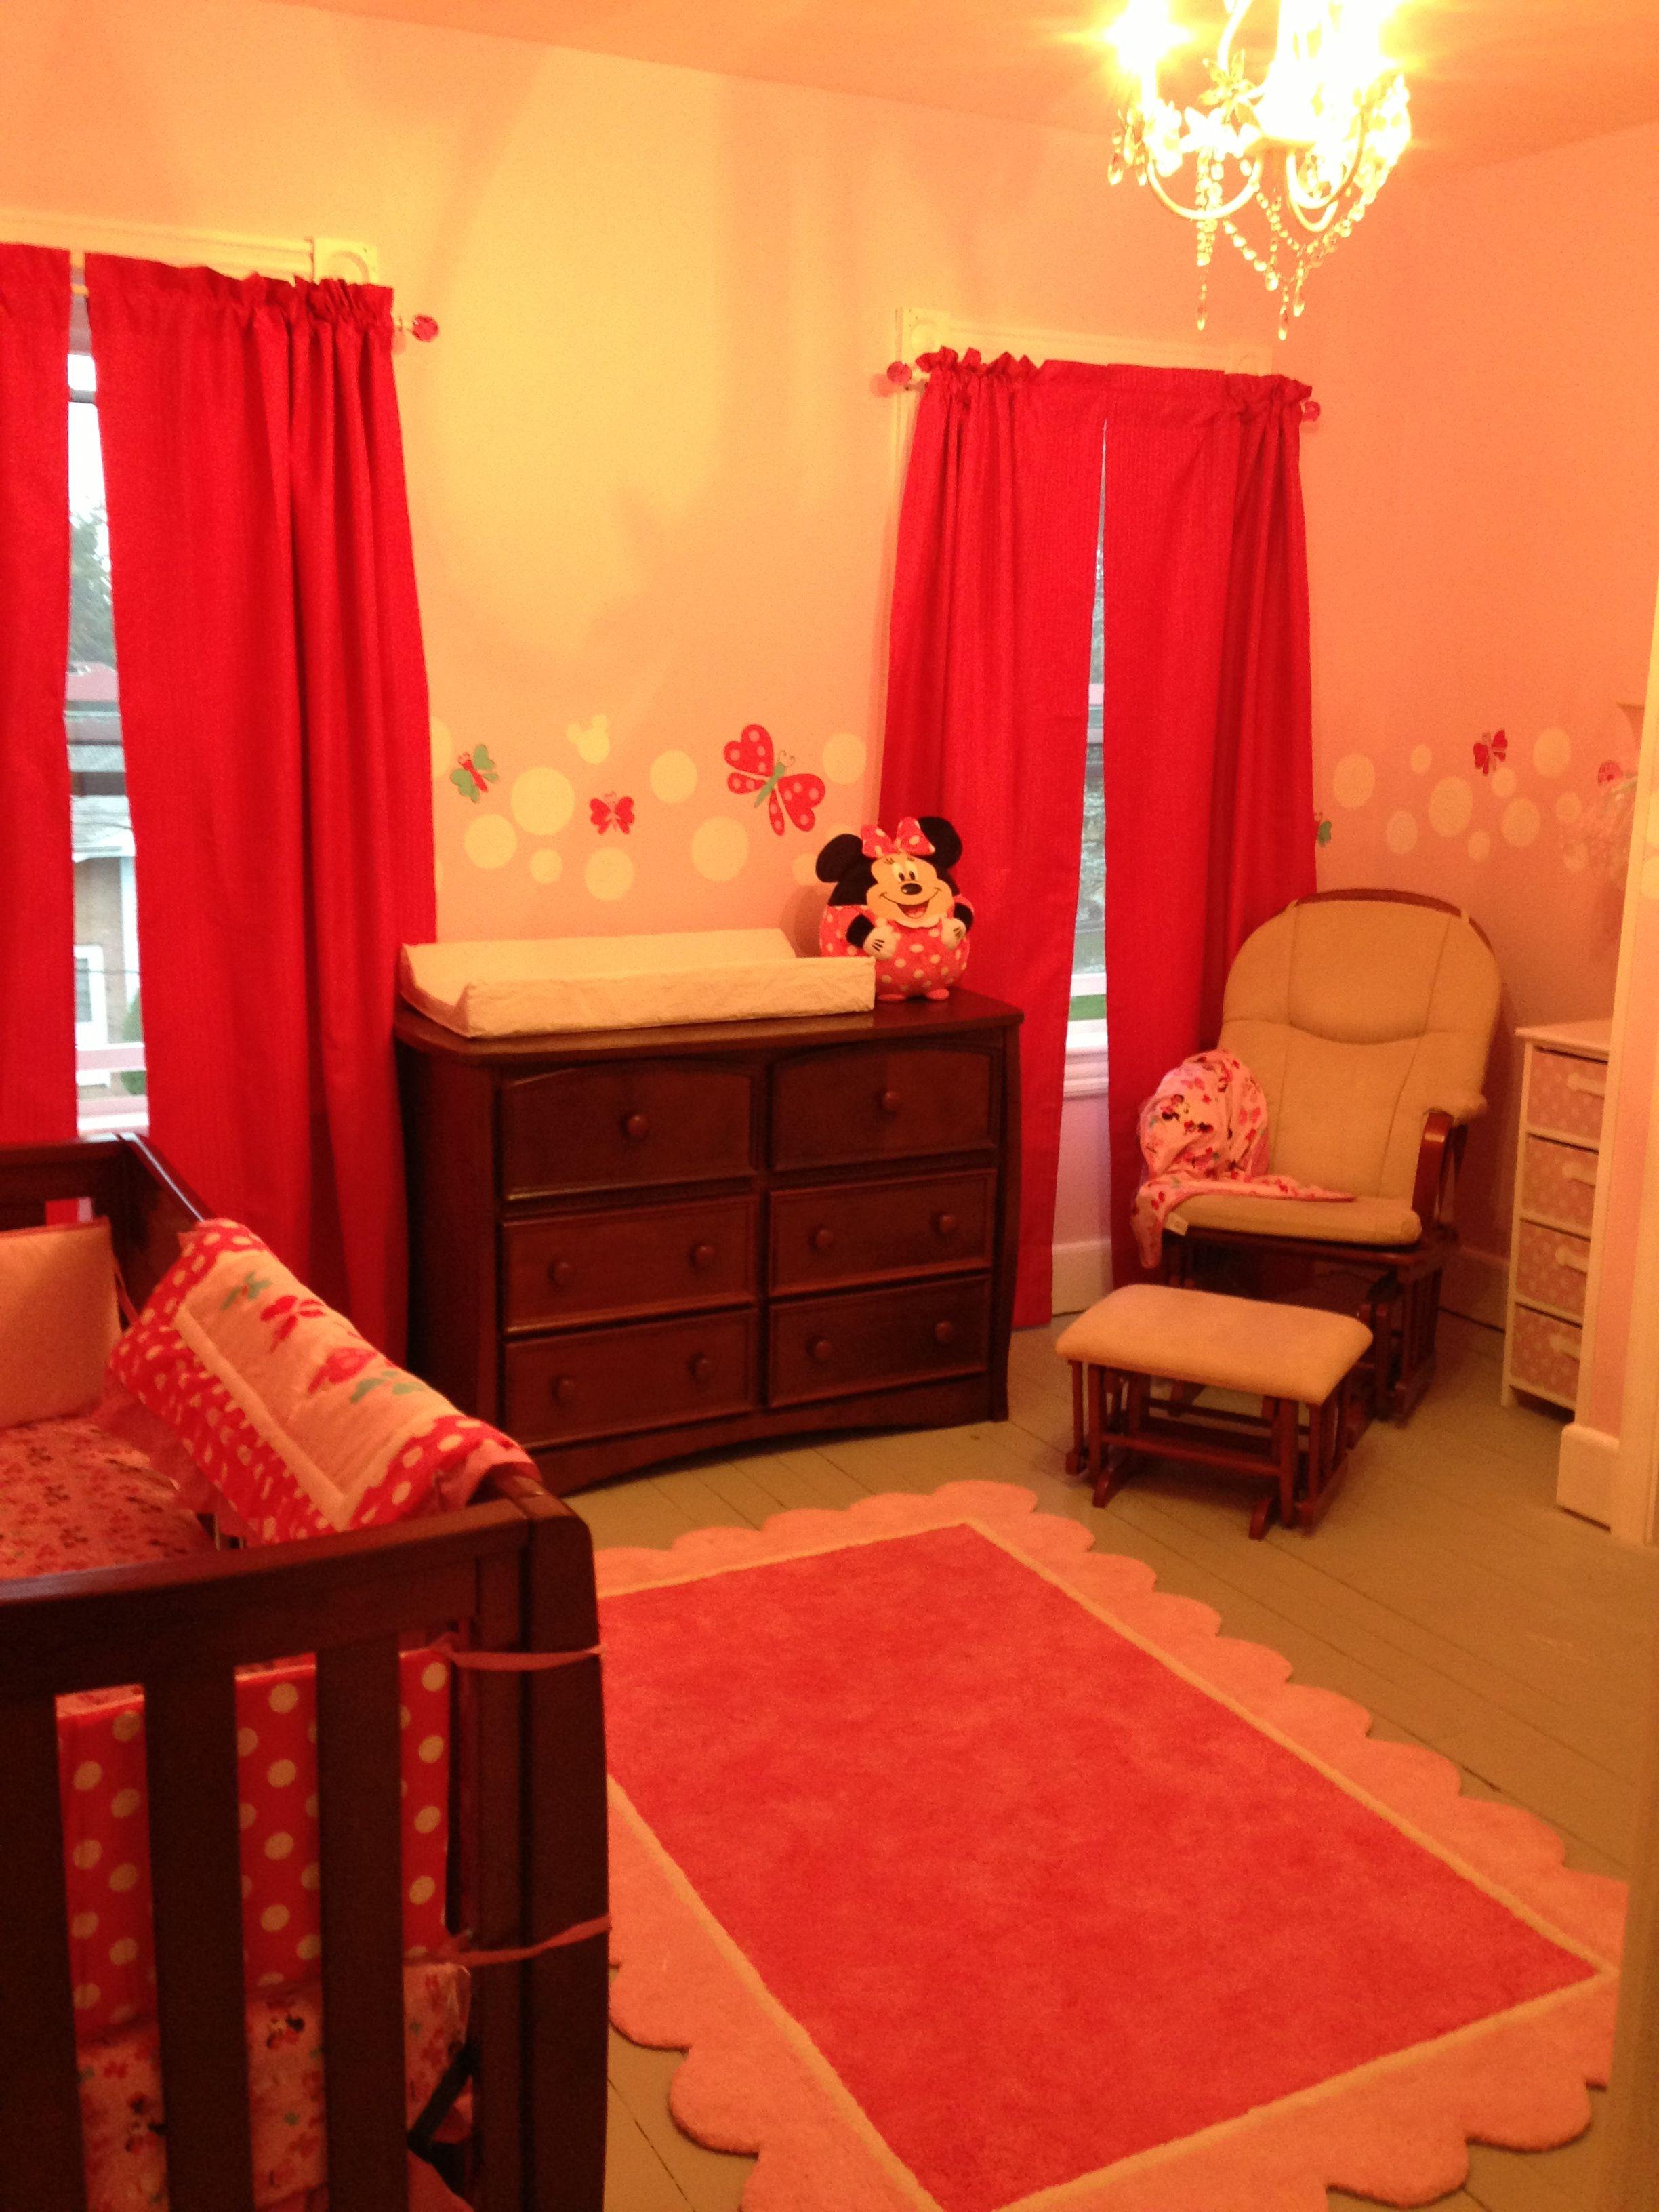 Minnie Mouse Nursery, Pink Rug Is A Nice Touch